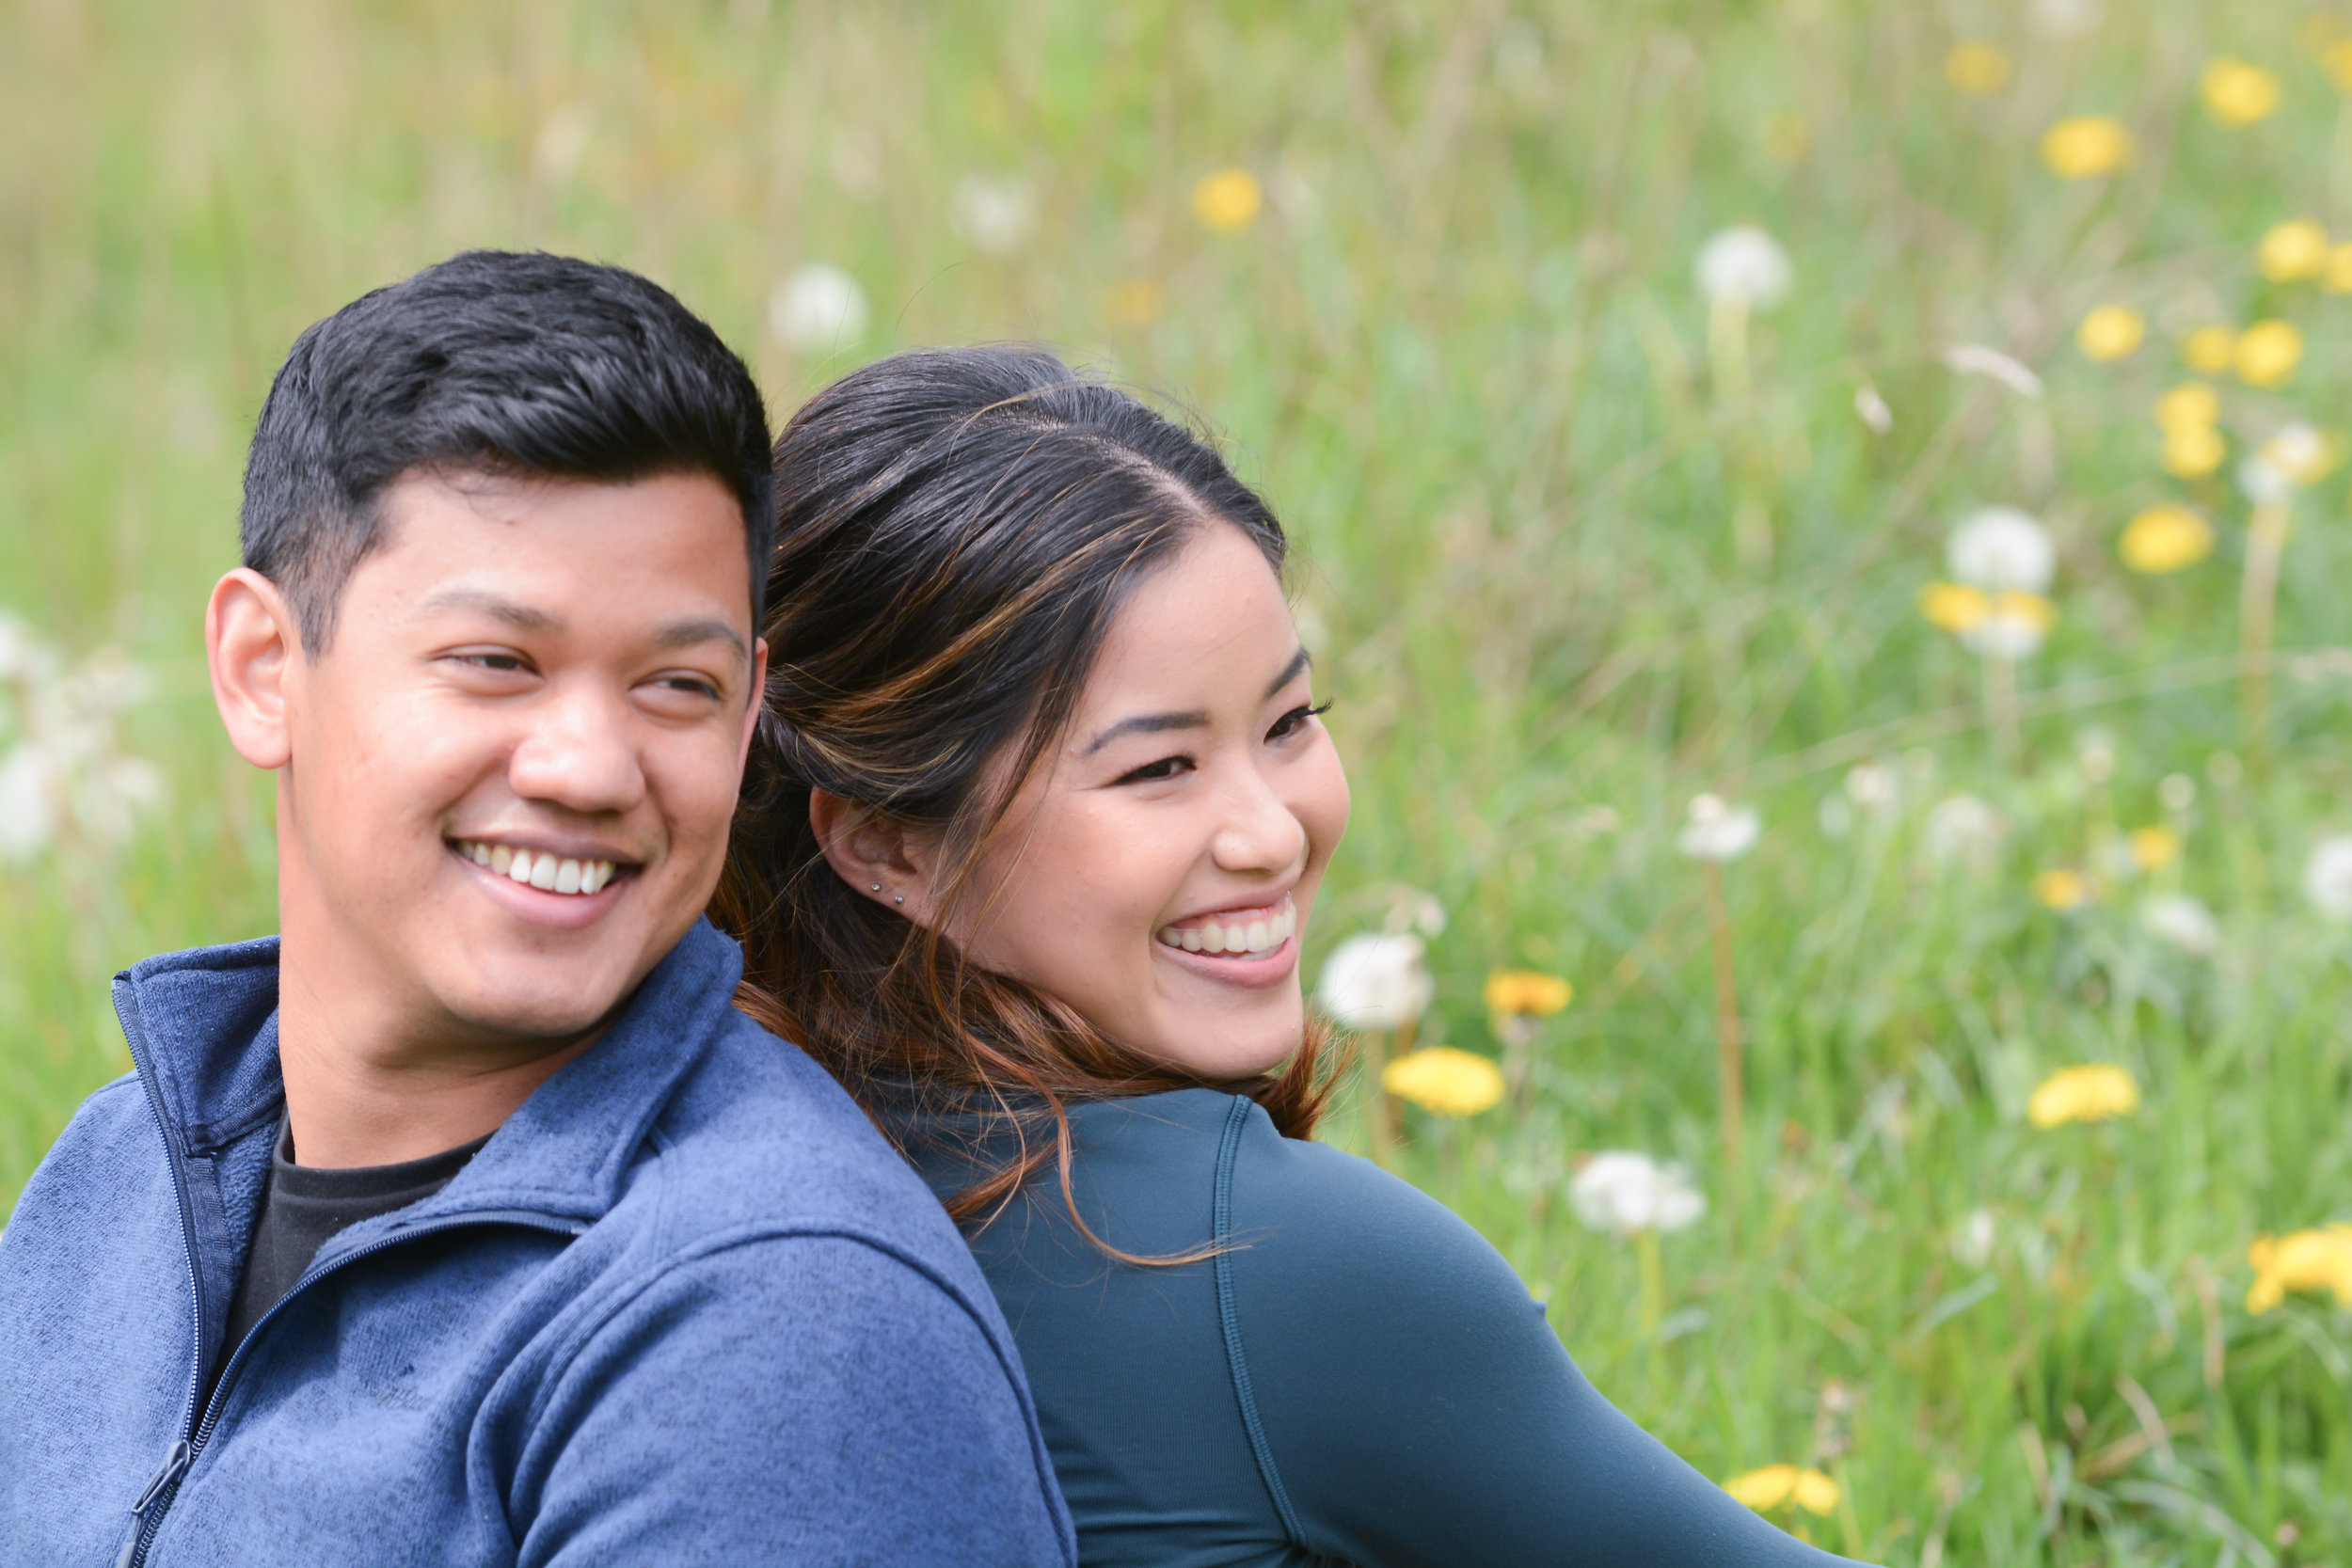 Engagement photoshoot photography by photographer in St Albans H